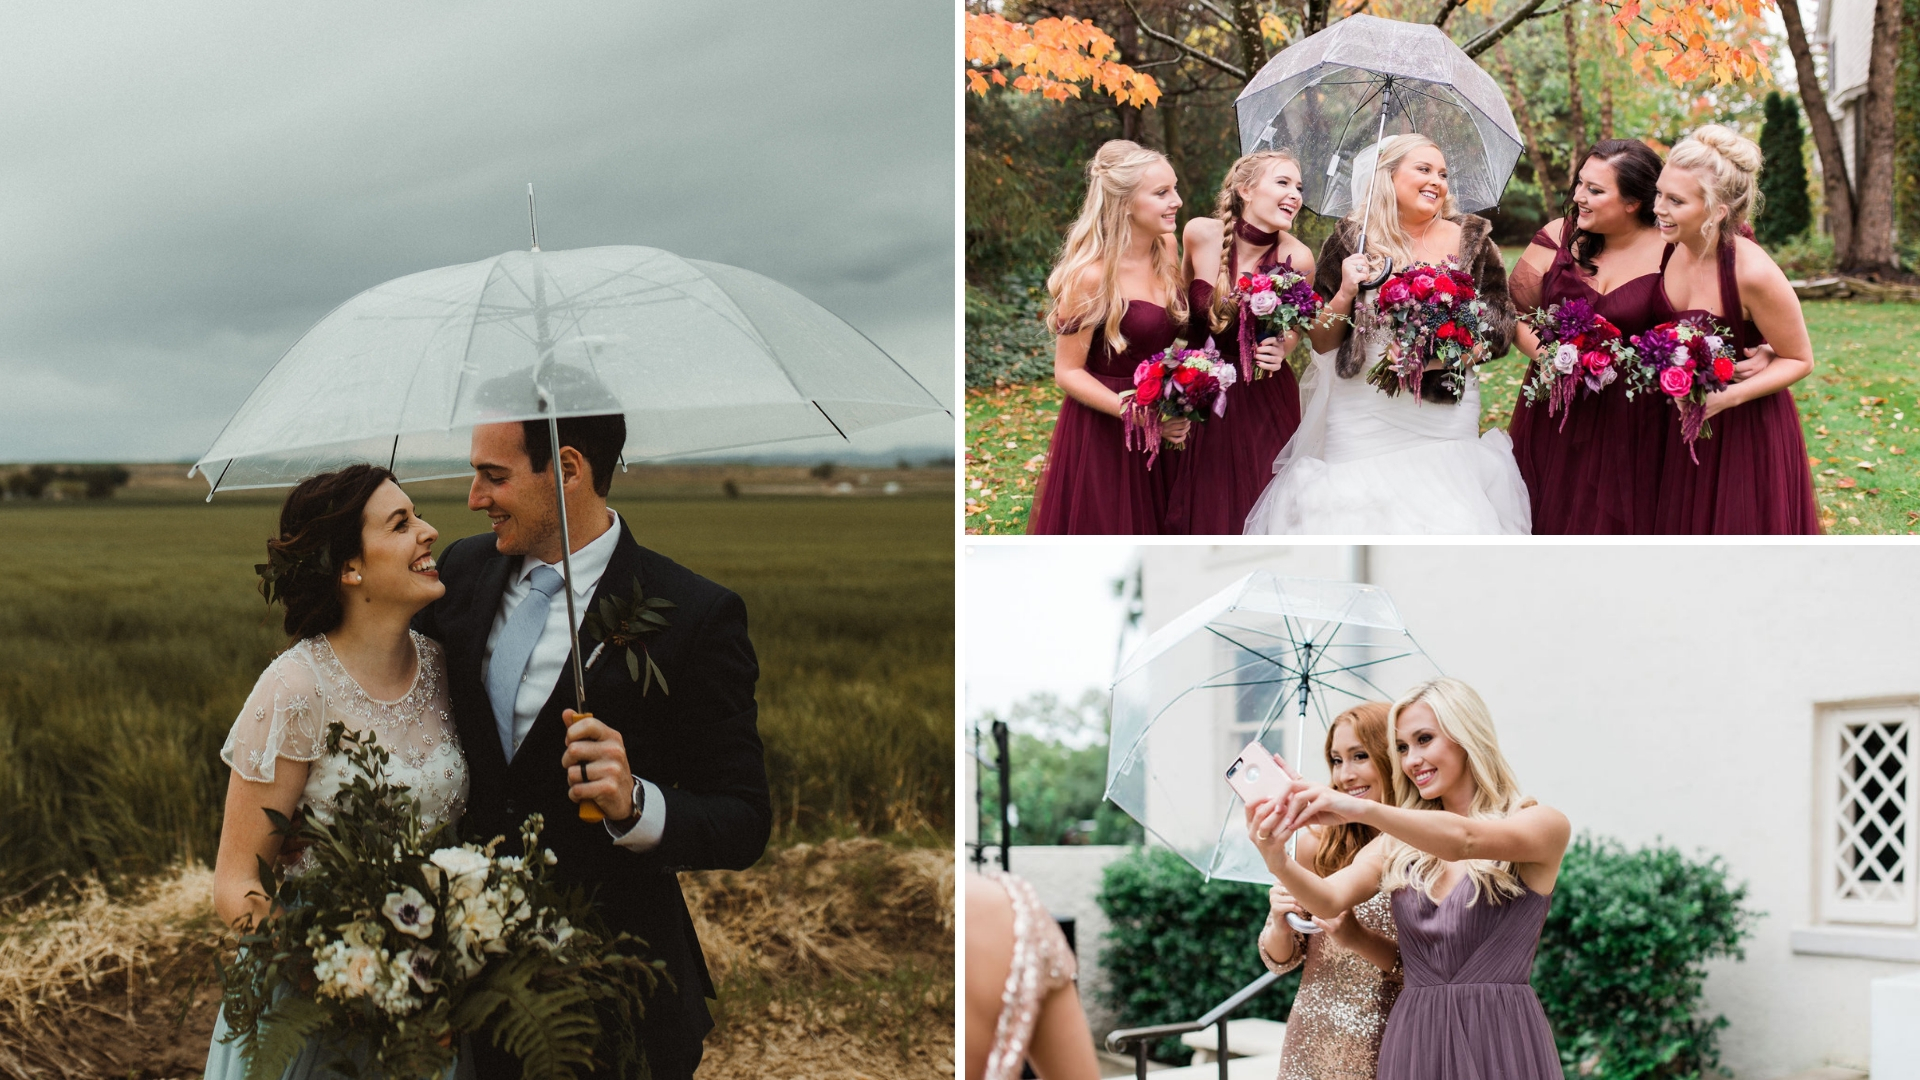 Rain On Your Wedding Day.5 Reasons To Rejoice For Rain On Your Wedding Day Revelry